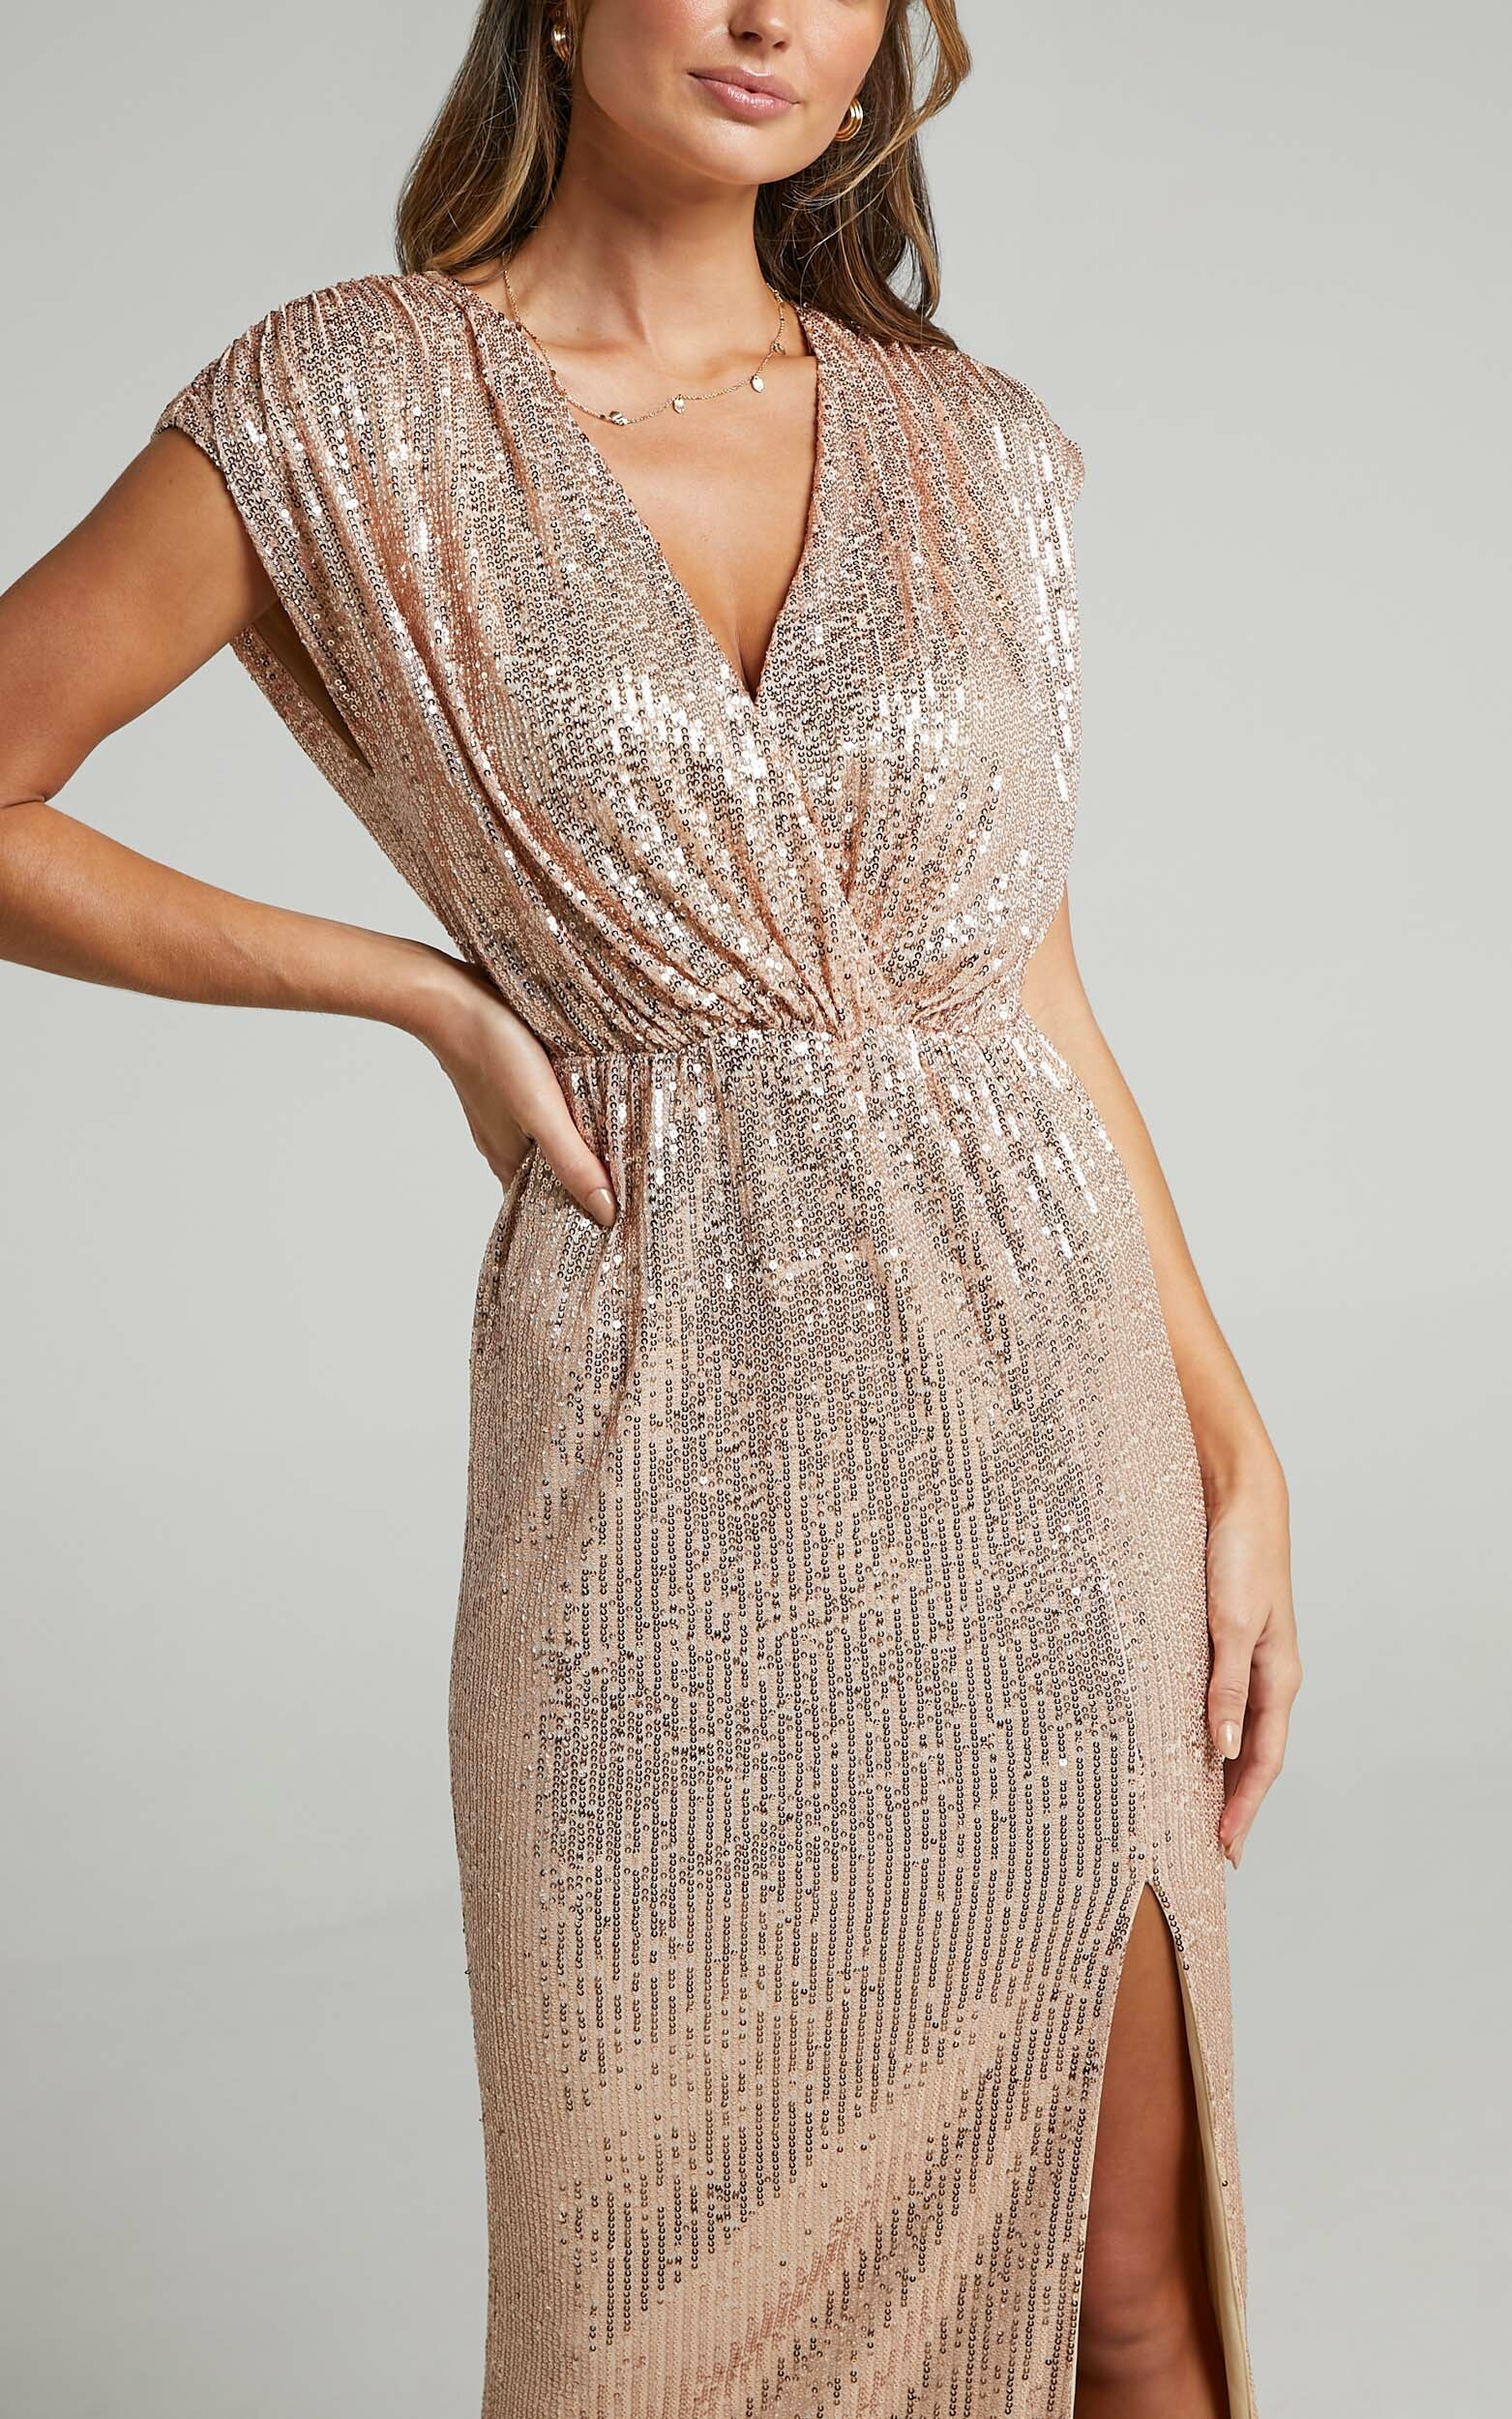 Remember The Day Dress in Rose Gold Sequin - 10, RSG1, hi-res image number null